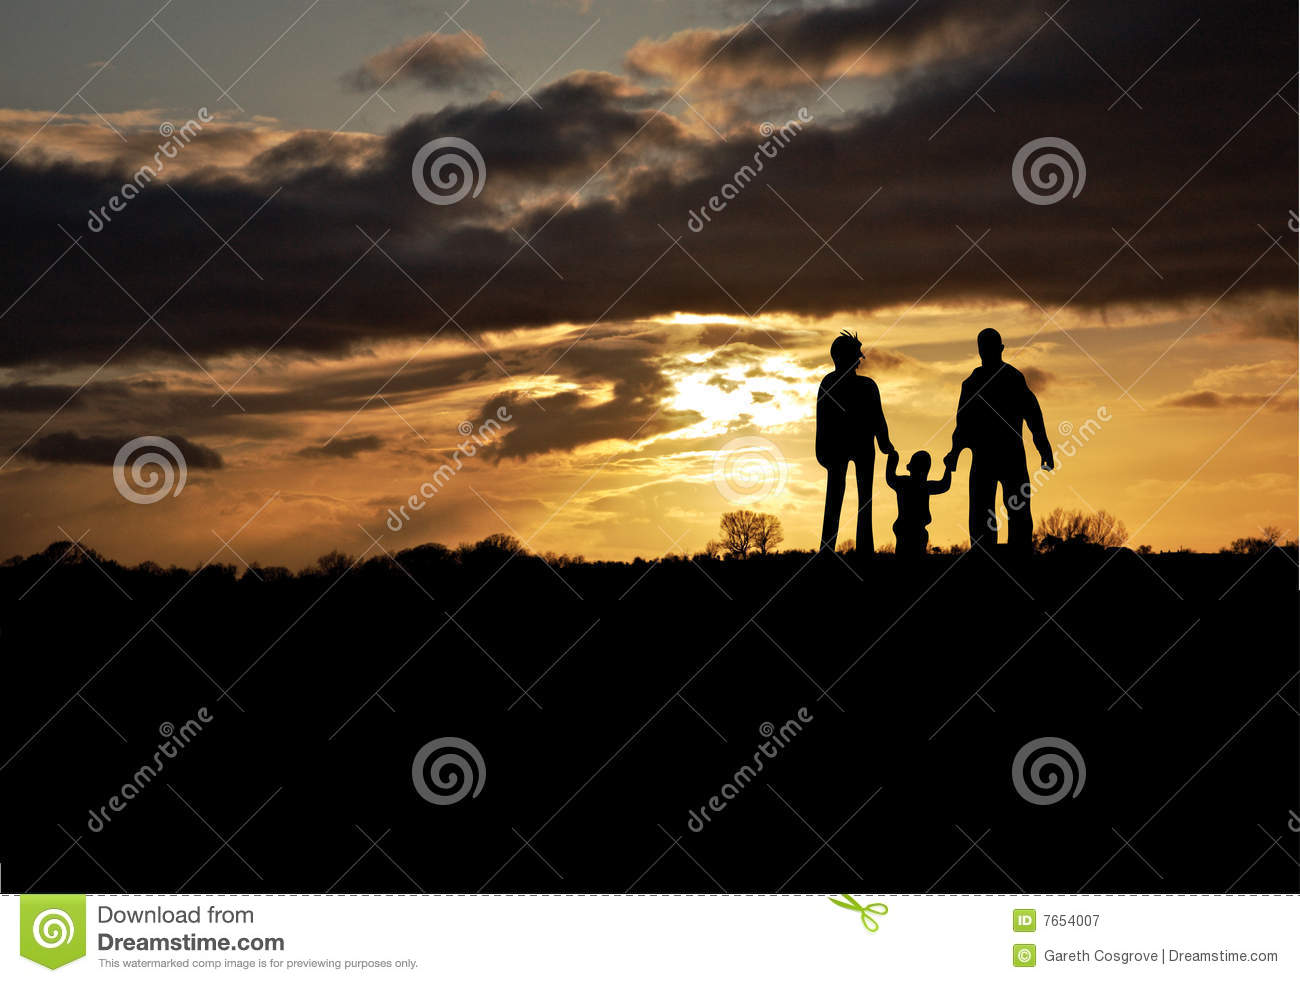 Family silhouetted at sunset